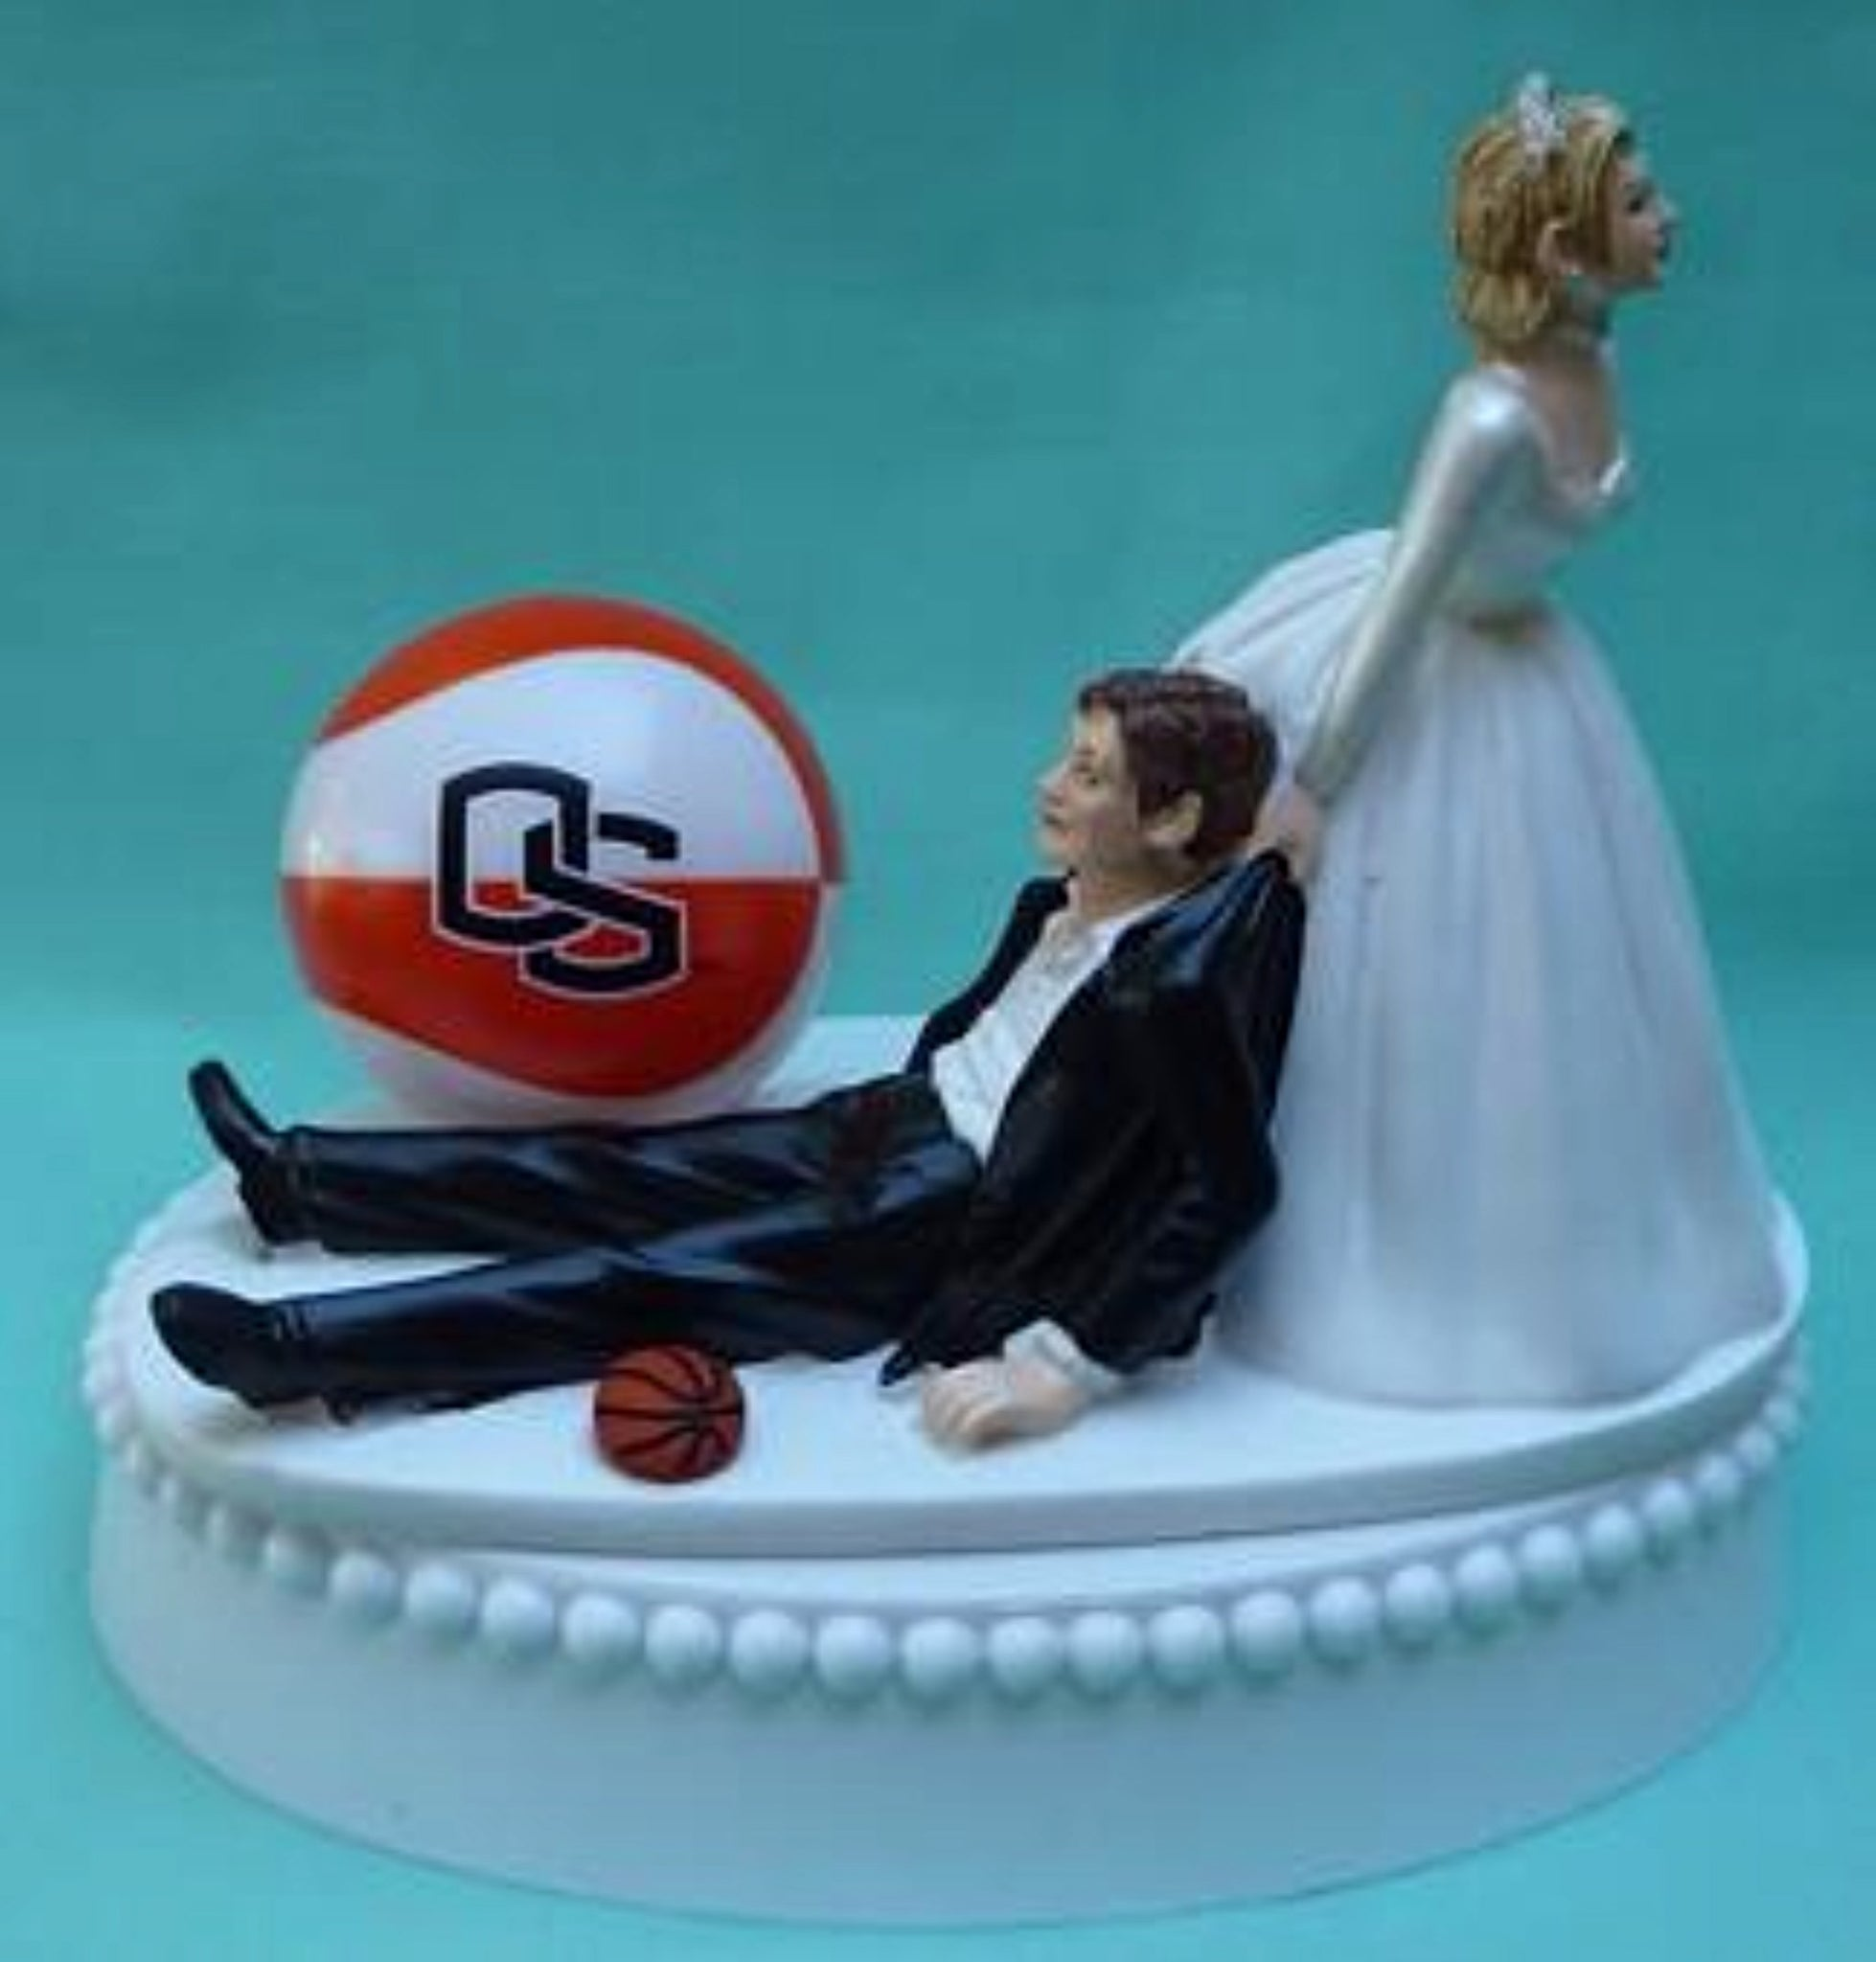 Oregon St. basketball wedding cake topper OSU Beavers State University funny fans humorous bride groom Fun Wedding Things